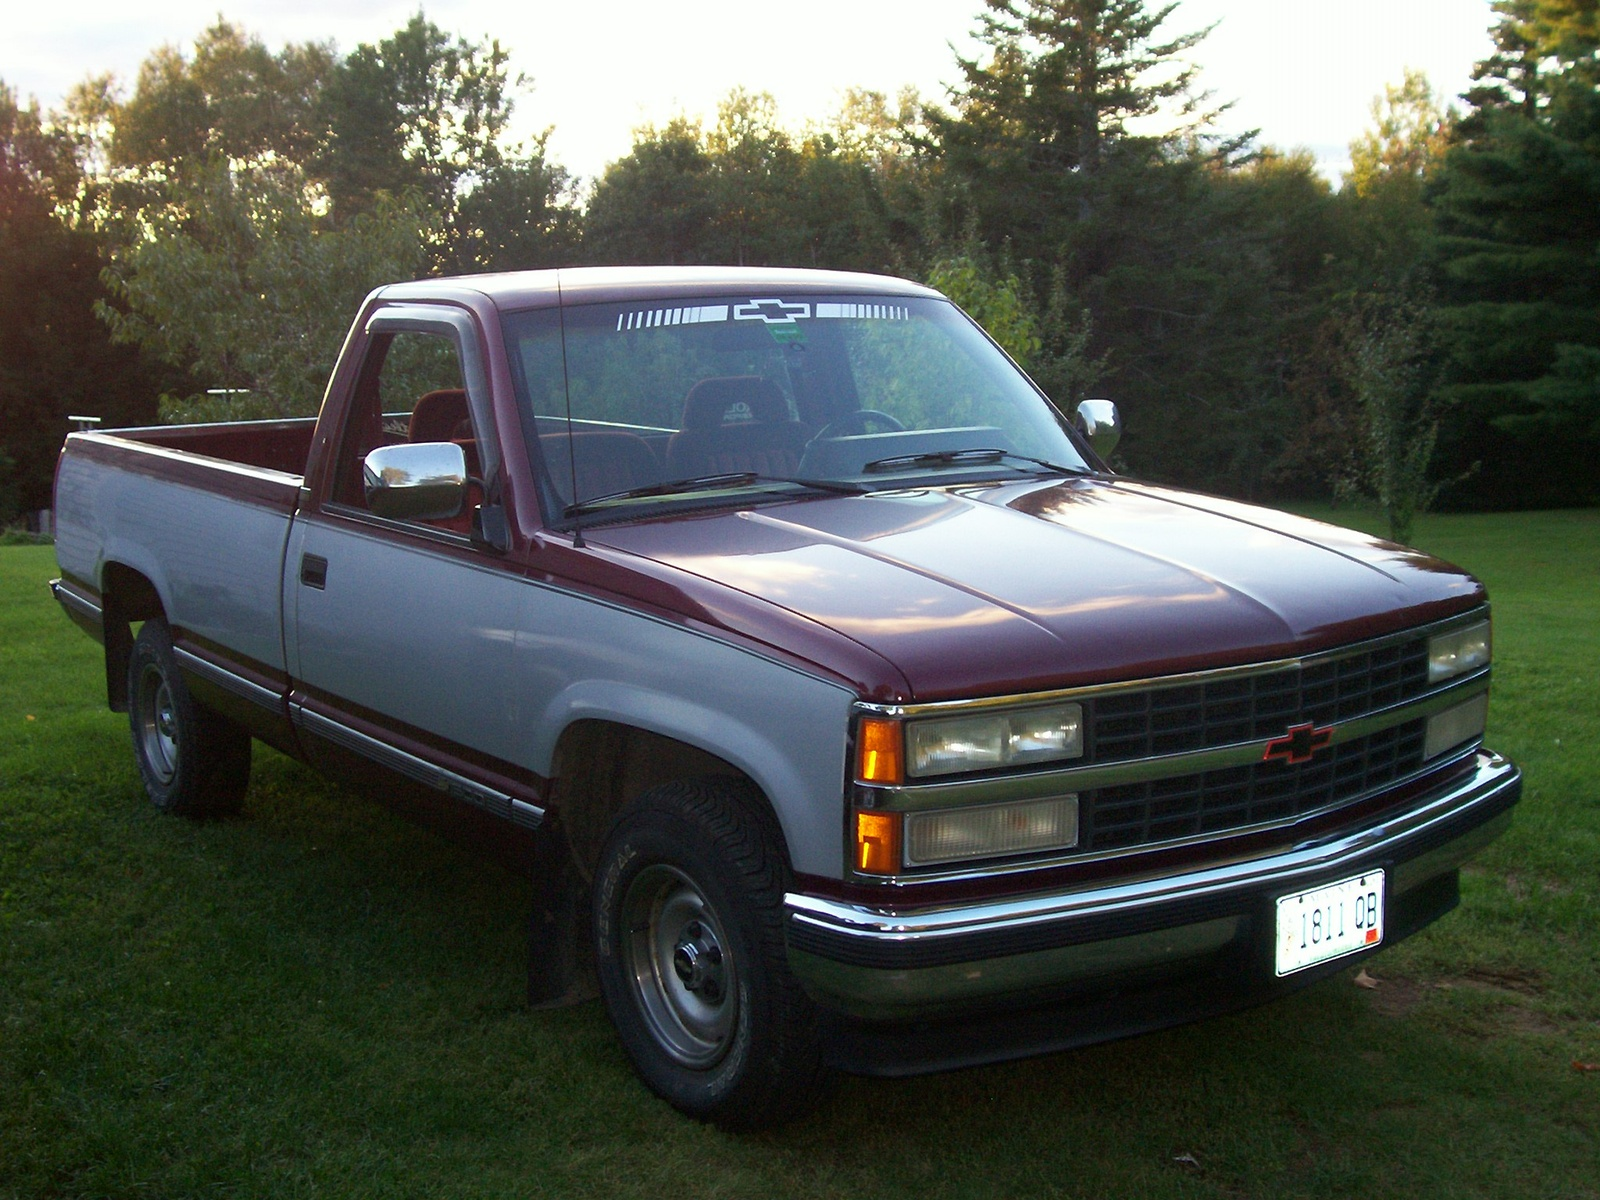 Chevy 1993 1500 Fuel Filter Get Free Image About Wiring My Dream Car Silverado